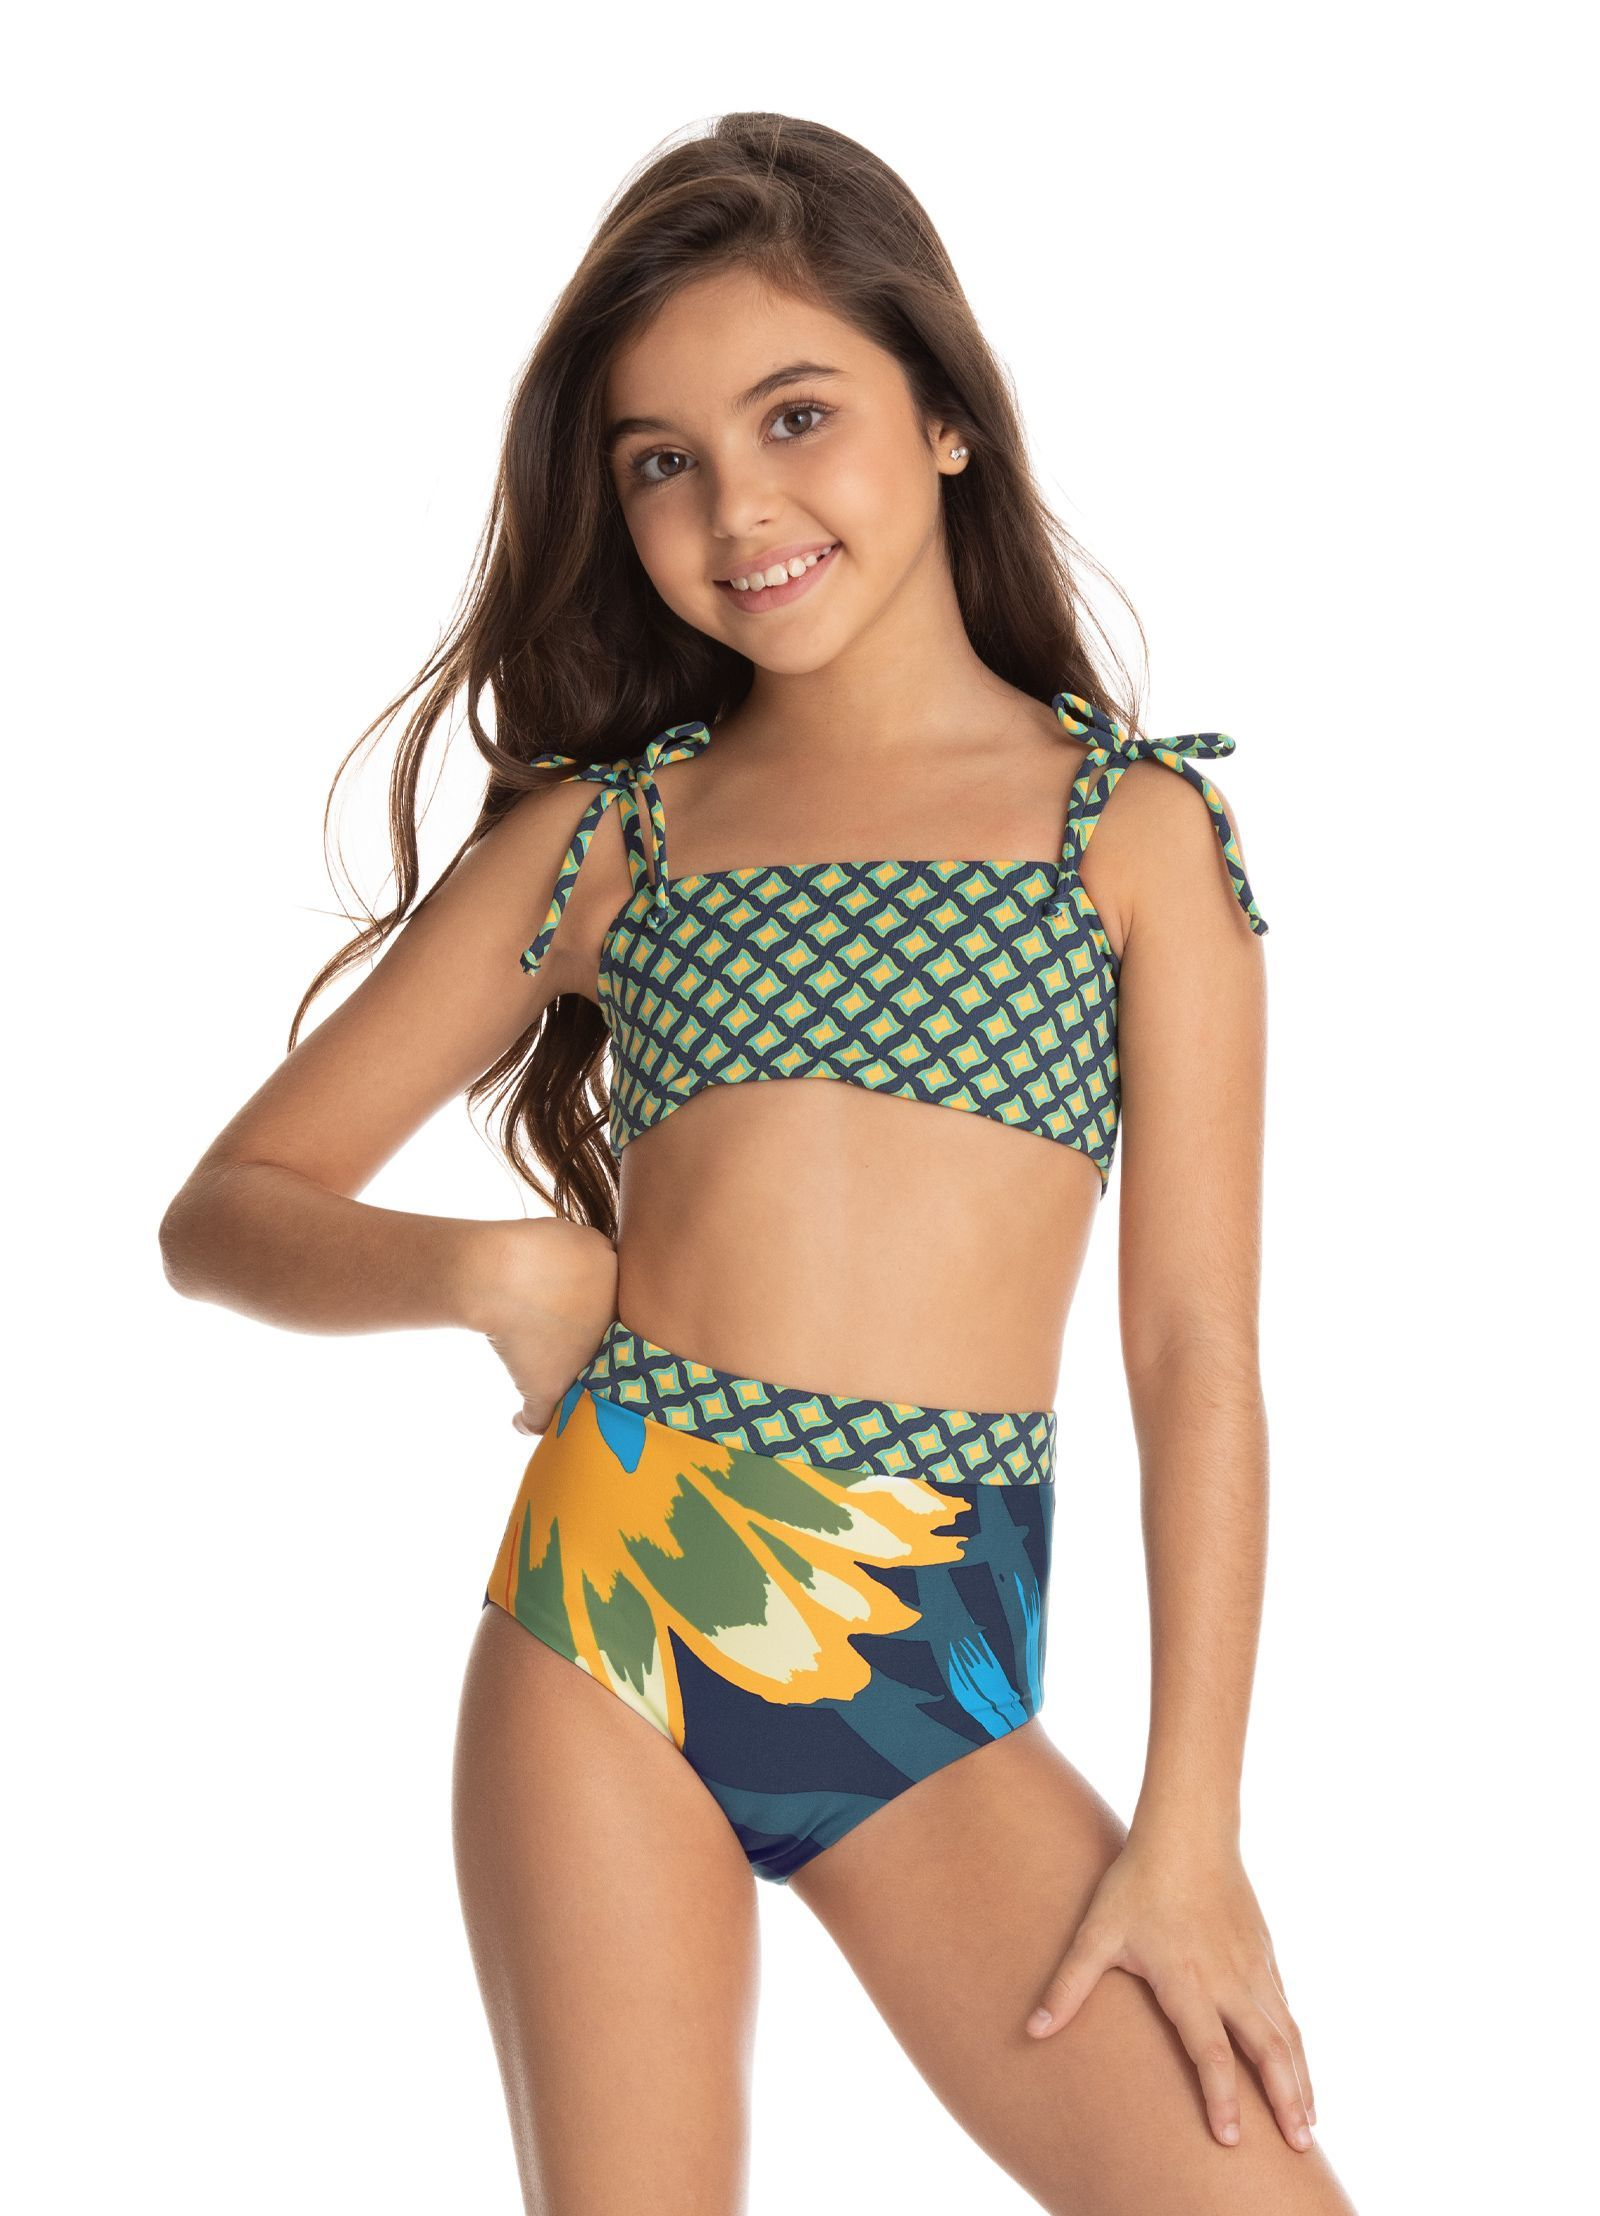 Ice Cream Sundae Bikini Set GIRLS SWIMWEAR MAAJI